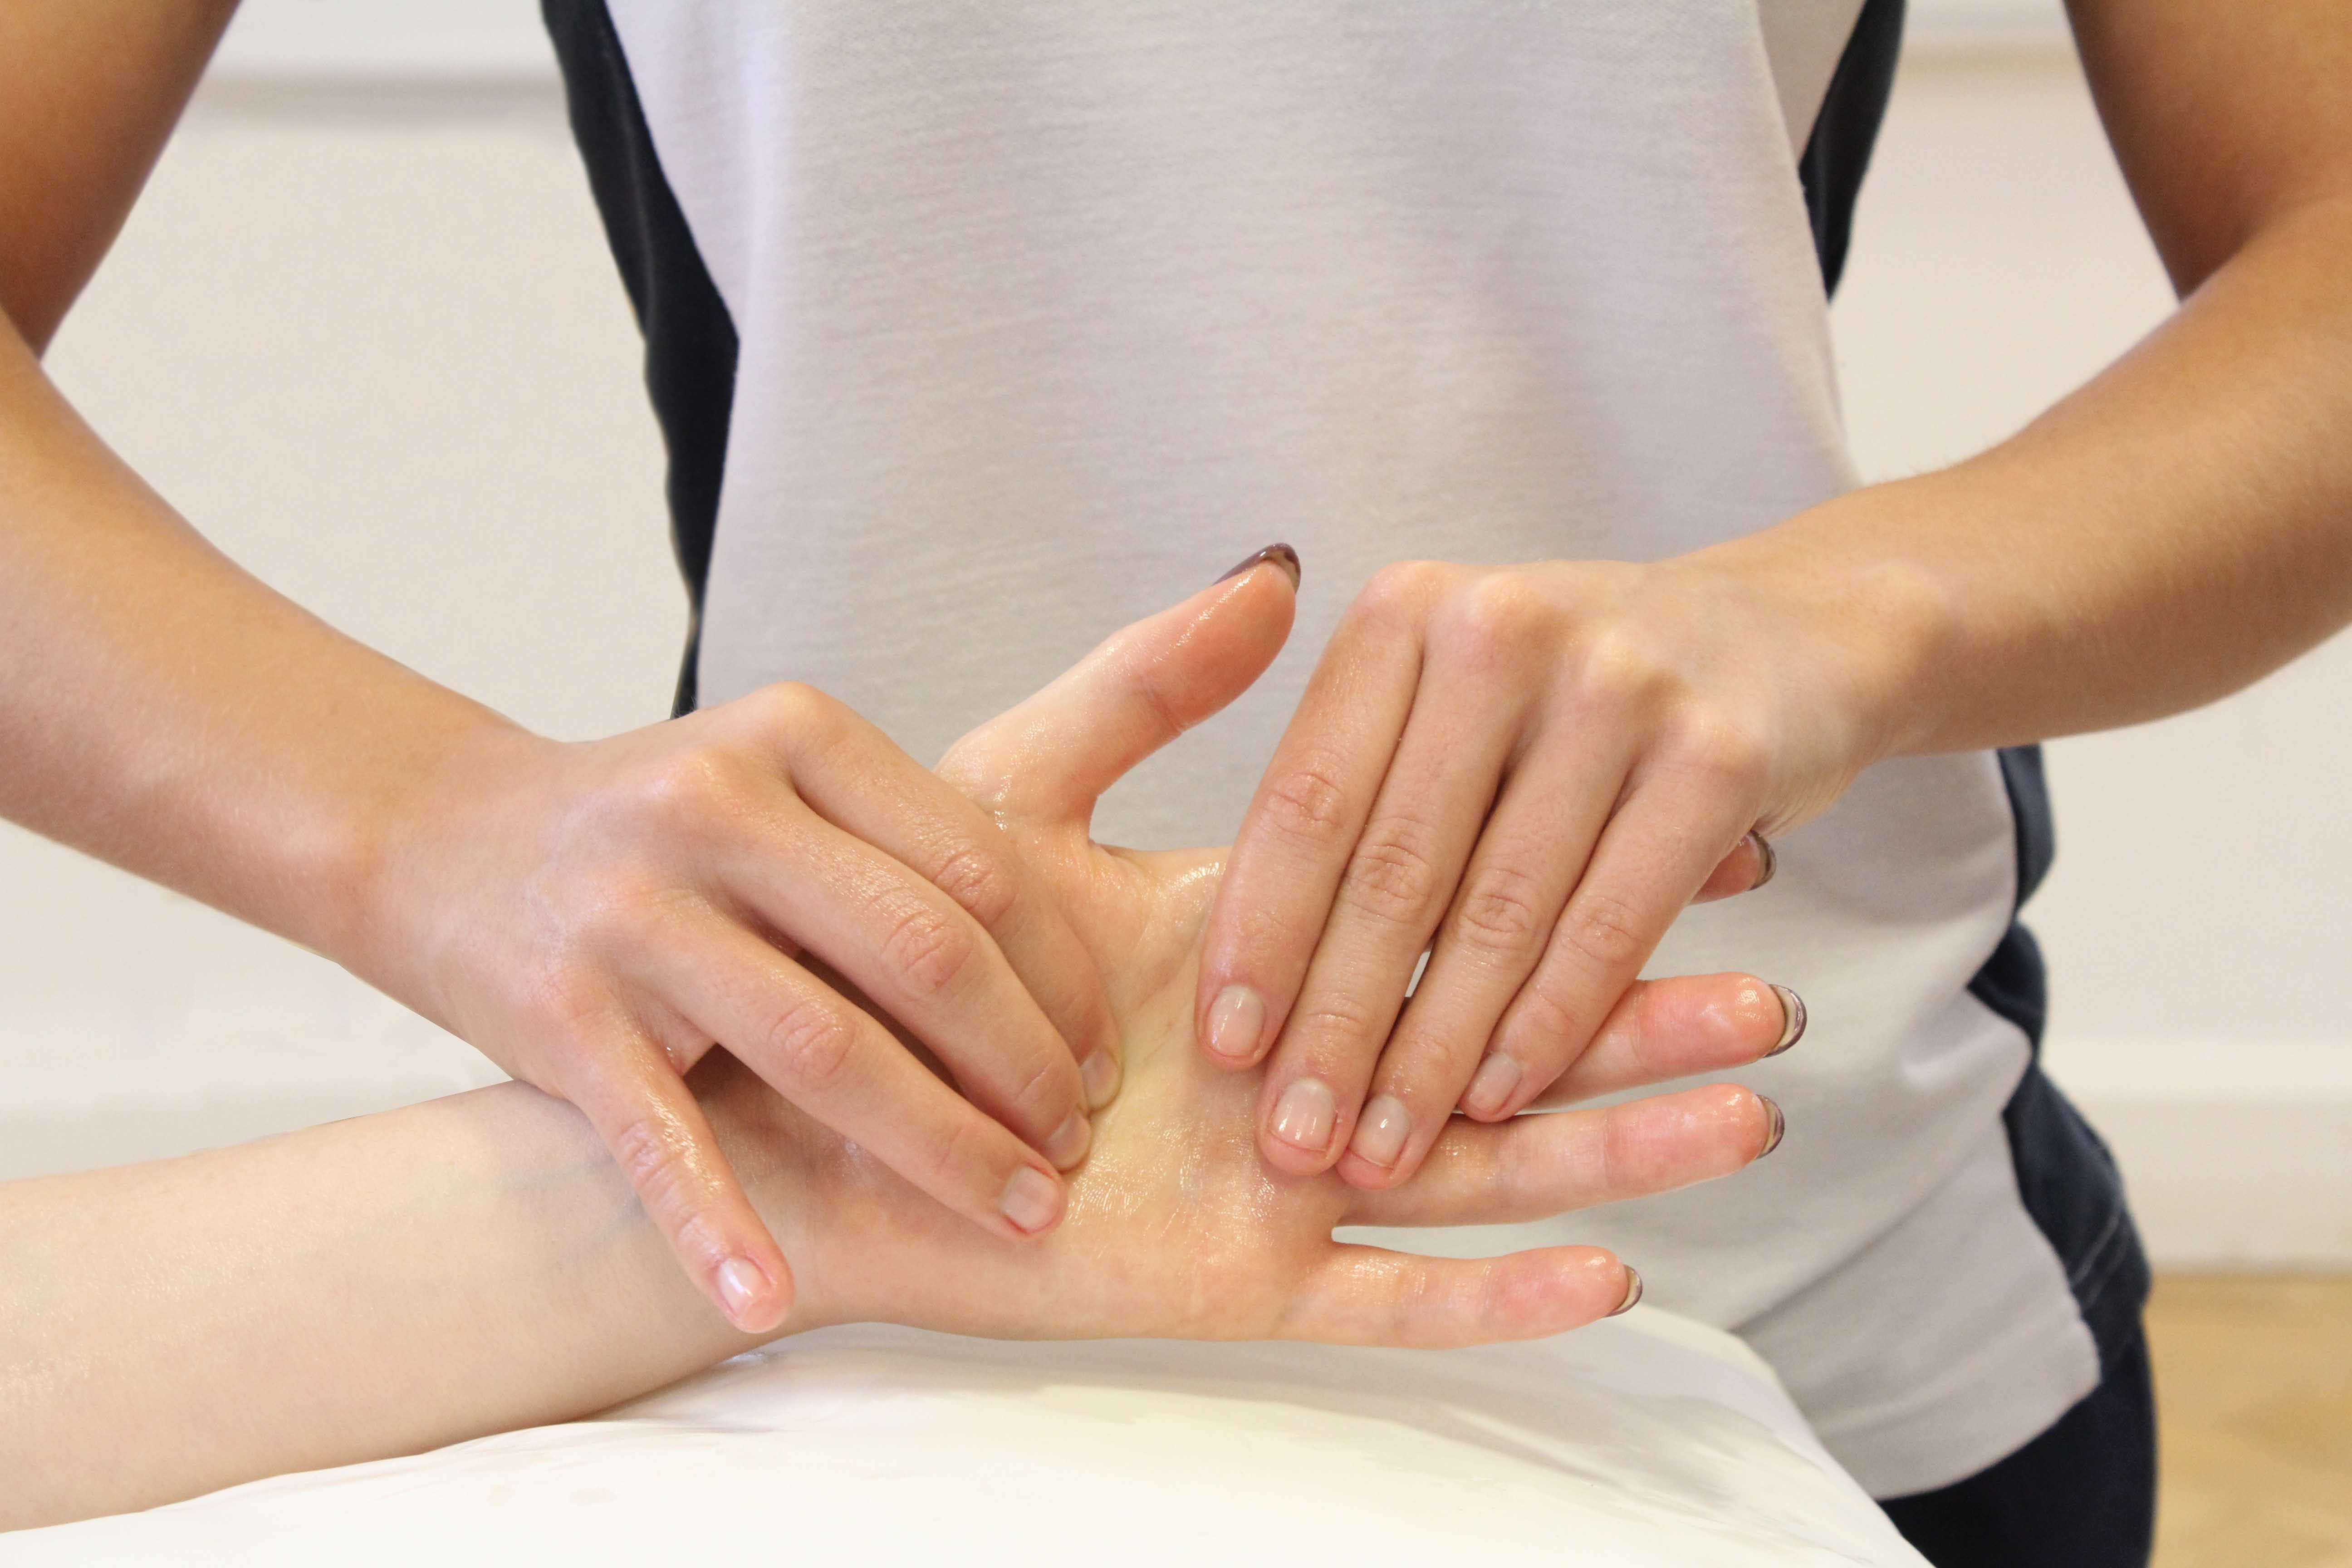 Soft tissue massage and mobilisations of the metacarpal bone joints